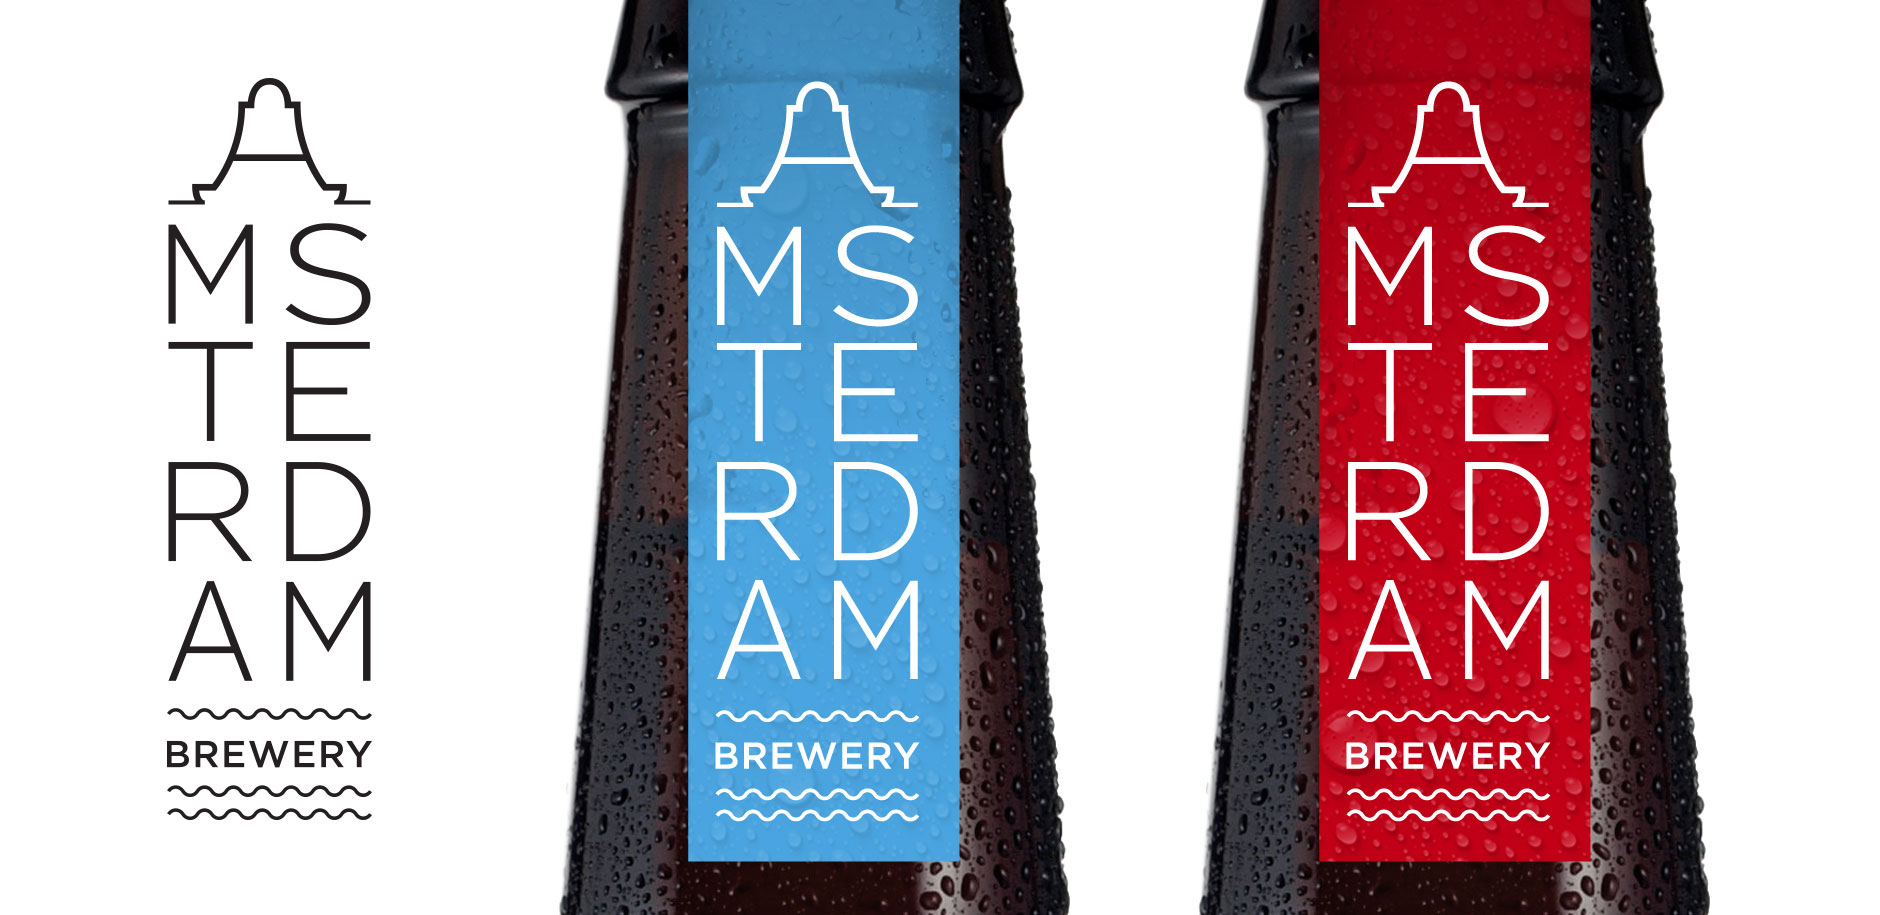 Amsterdam Brewery beer innovation